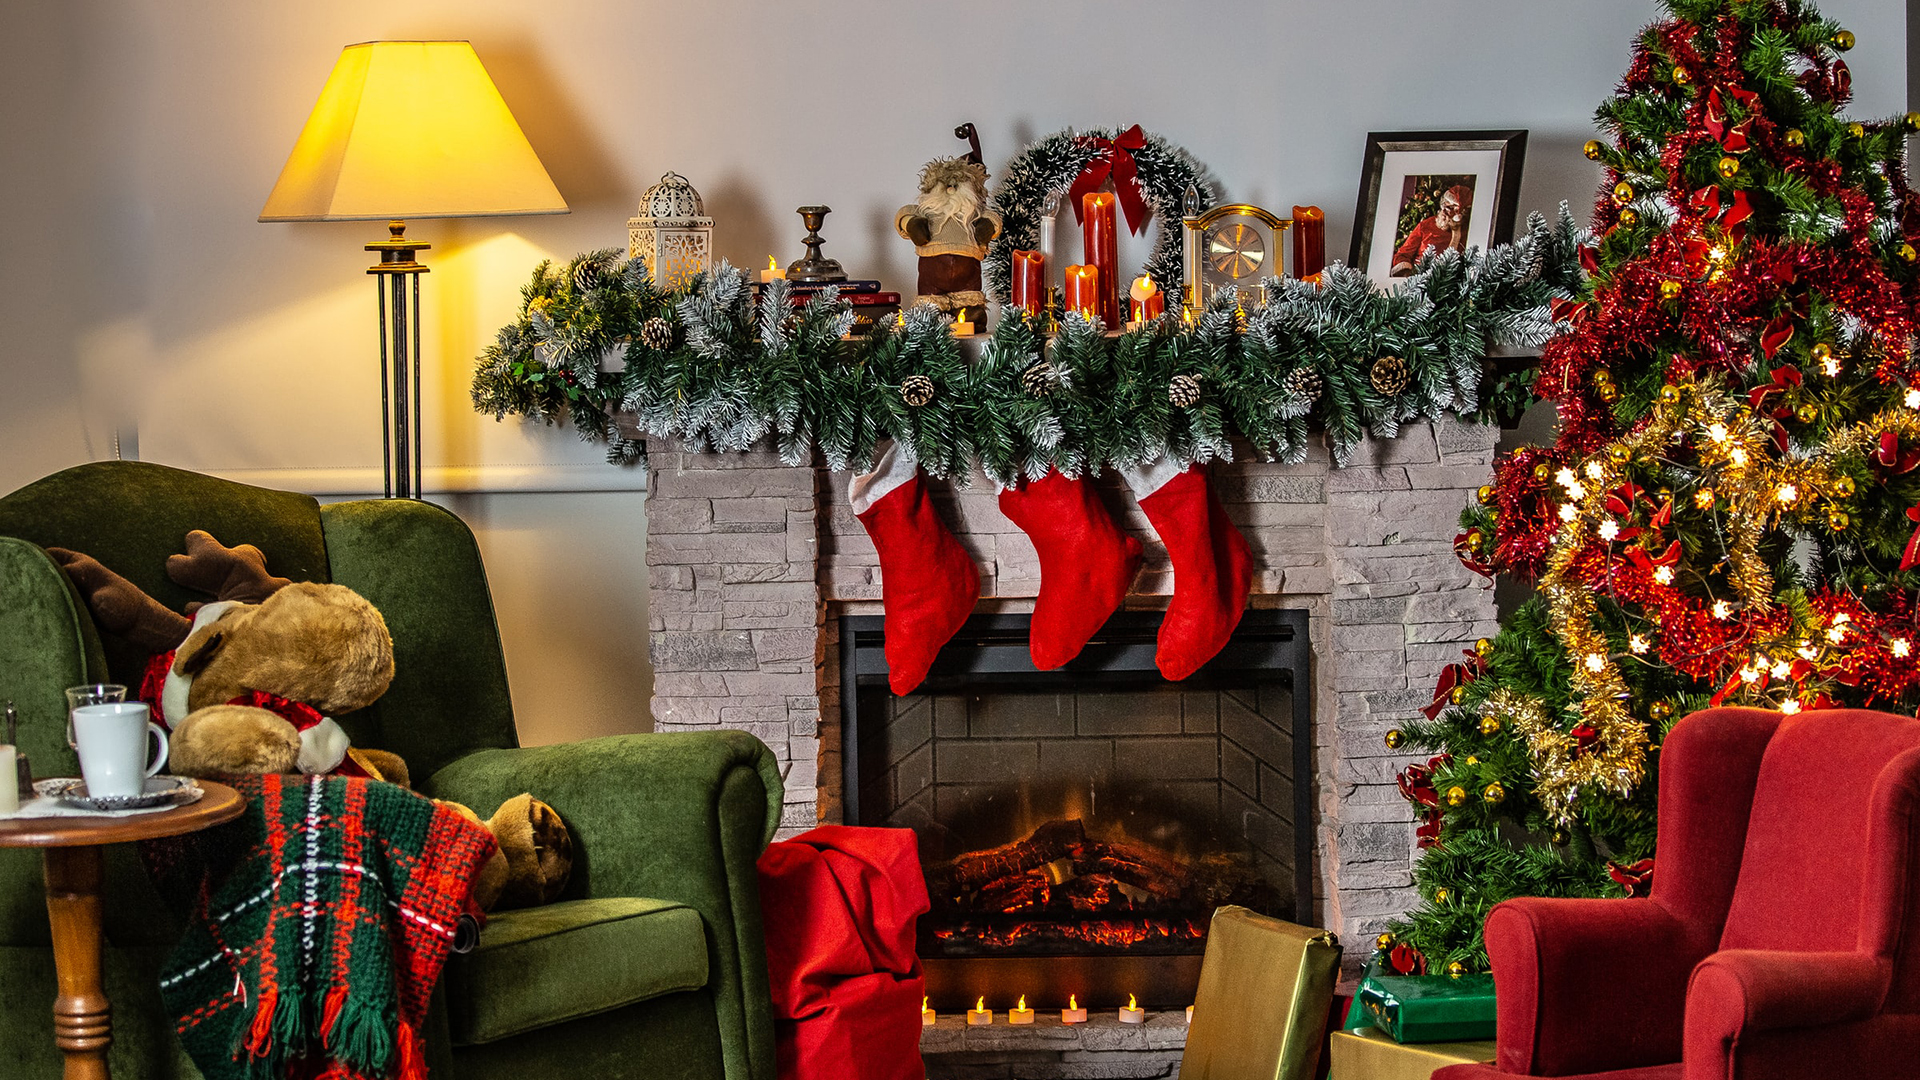 Small living room decorated for Christmas. Virtual background to use on Zoom, Microsoft Teams, Skype, Google Meet, WebEx or any other compatible app.